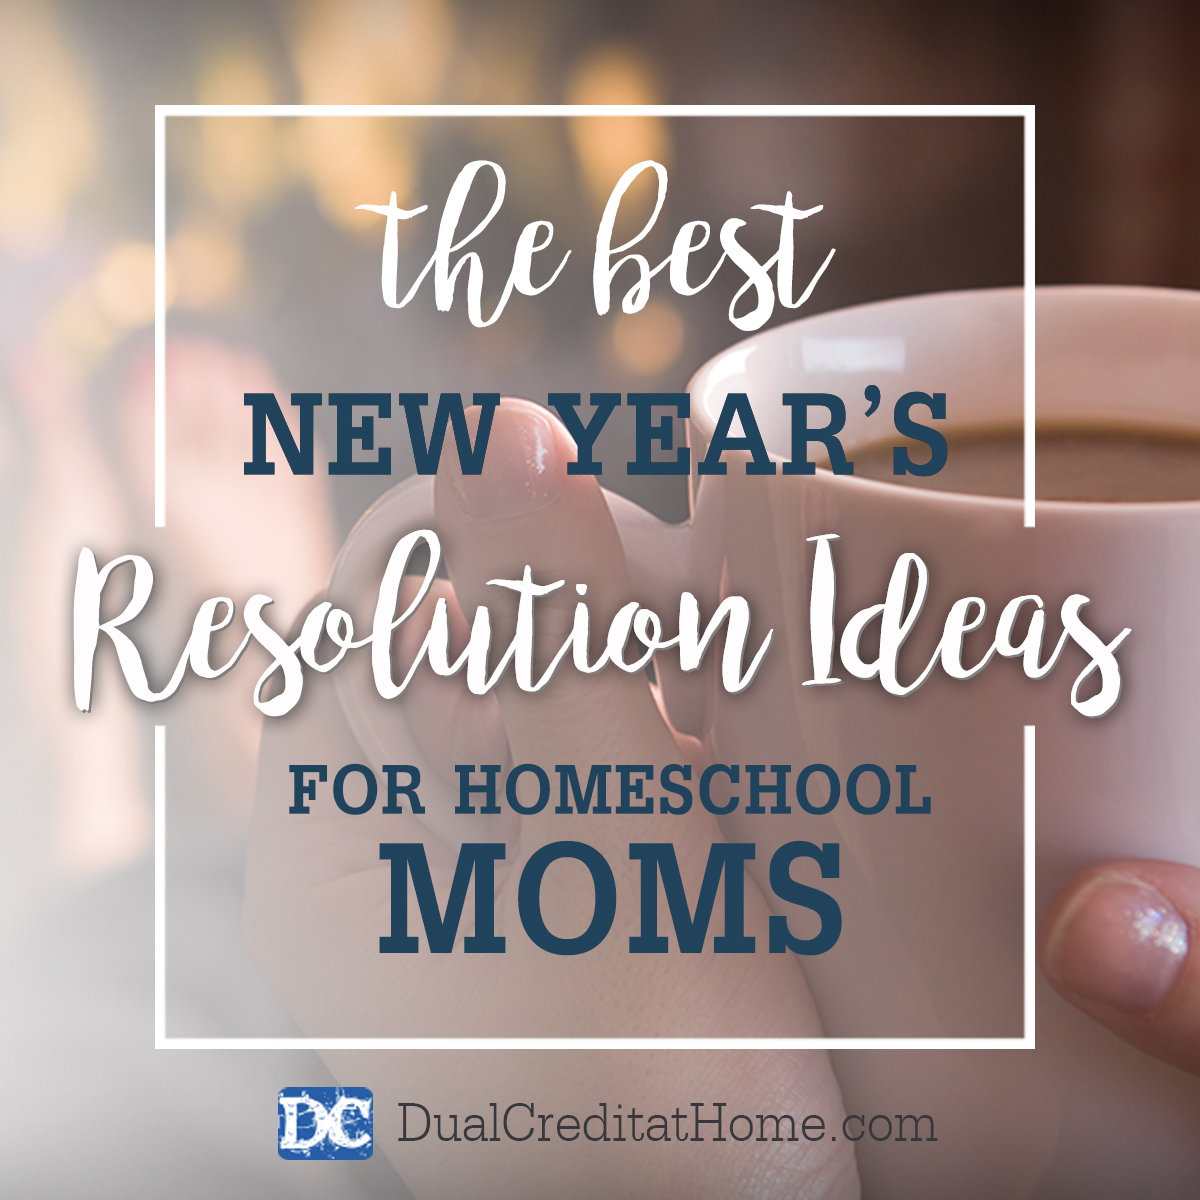 The Best New Year's Resolution Ideas for Homeschool Moms